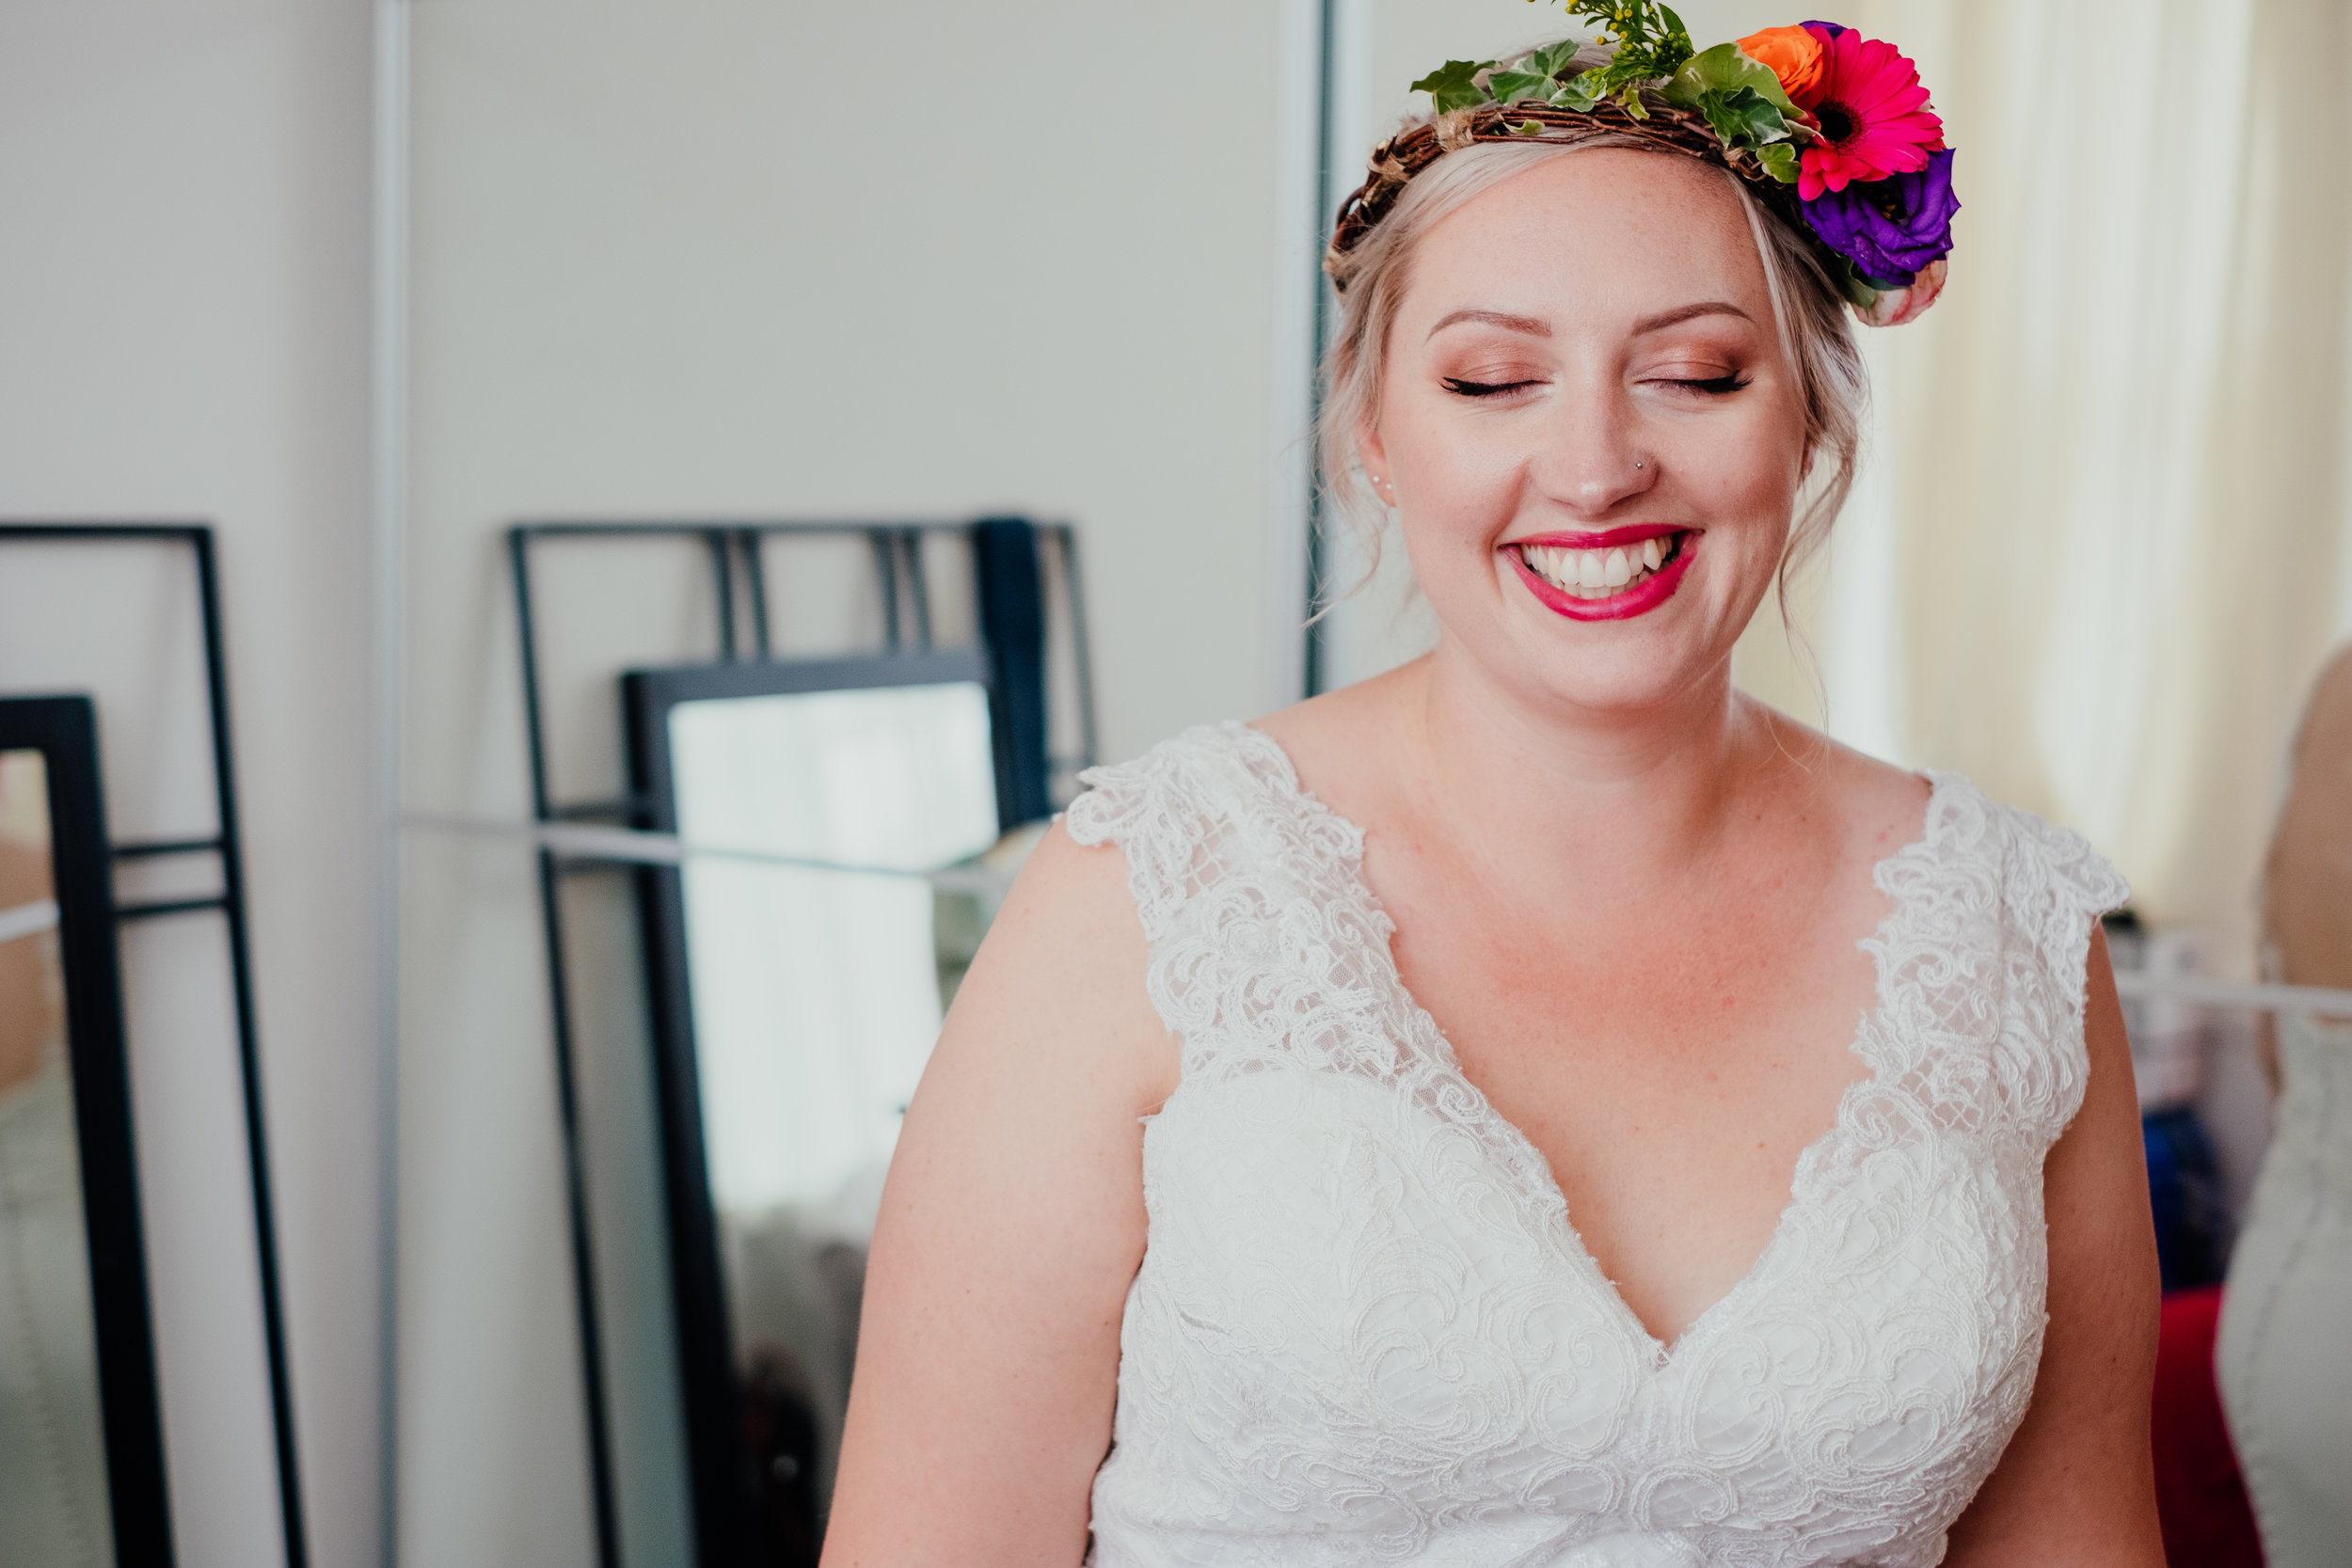 Vegan bride wearing flower crown smiling